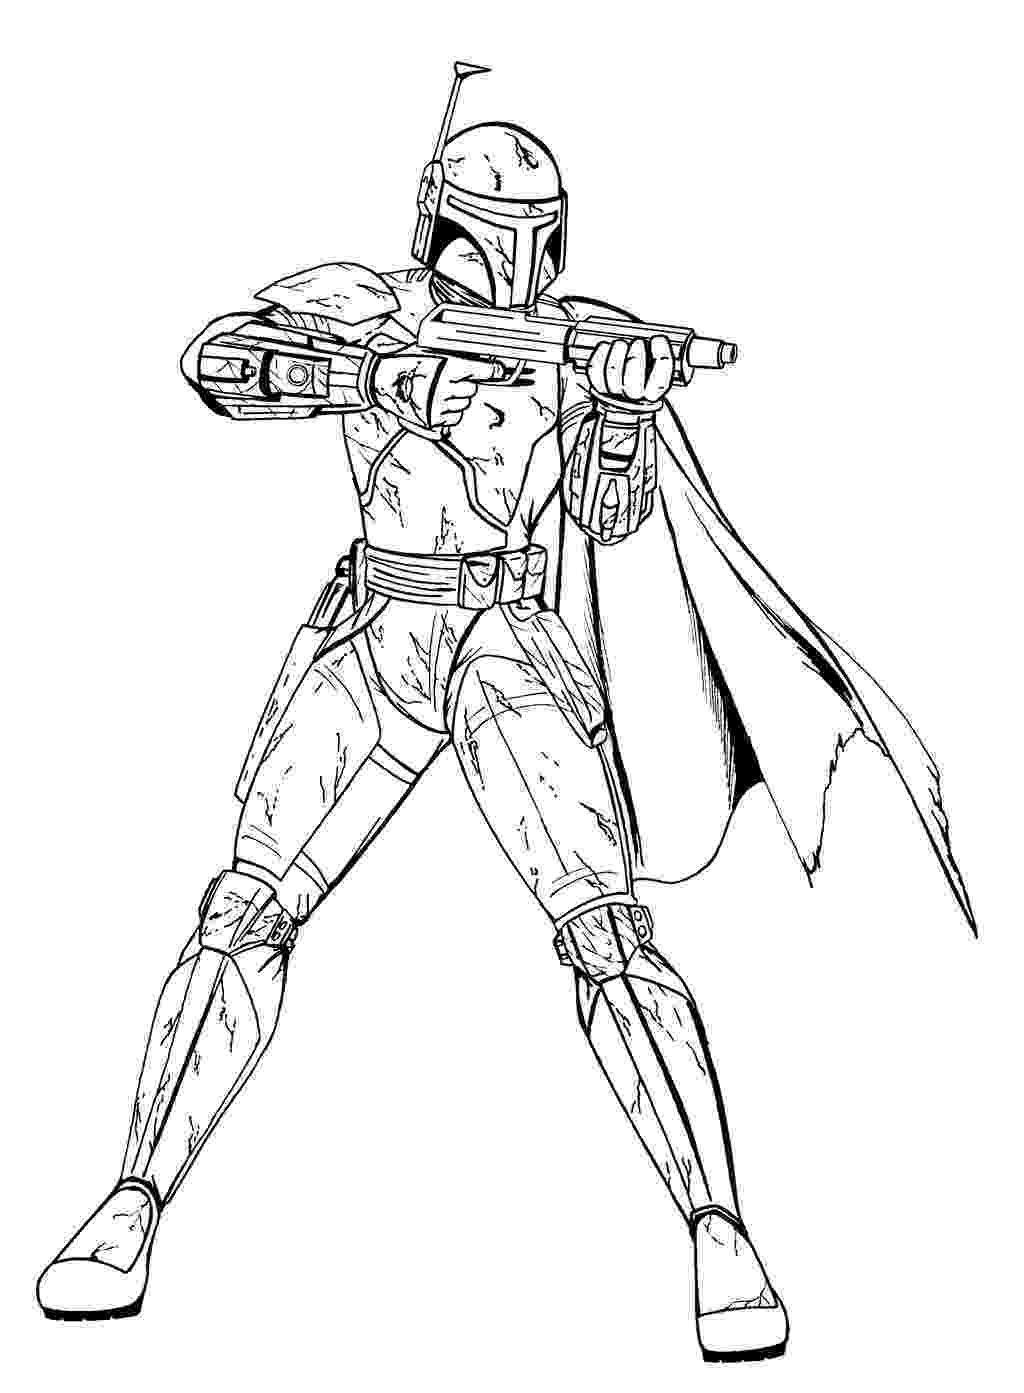 coloring pages printable star wars free printable star wars coloring pages free printable star coloring pages wars printable